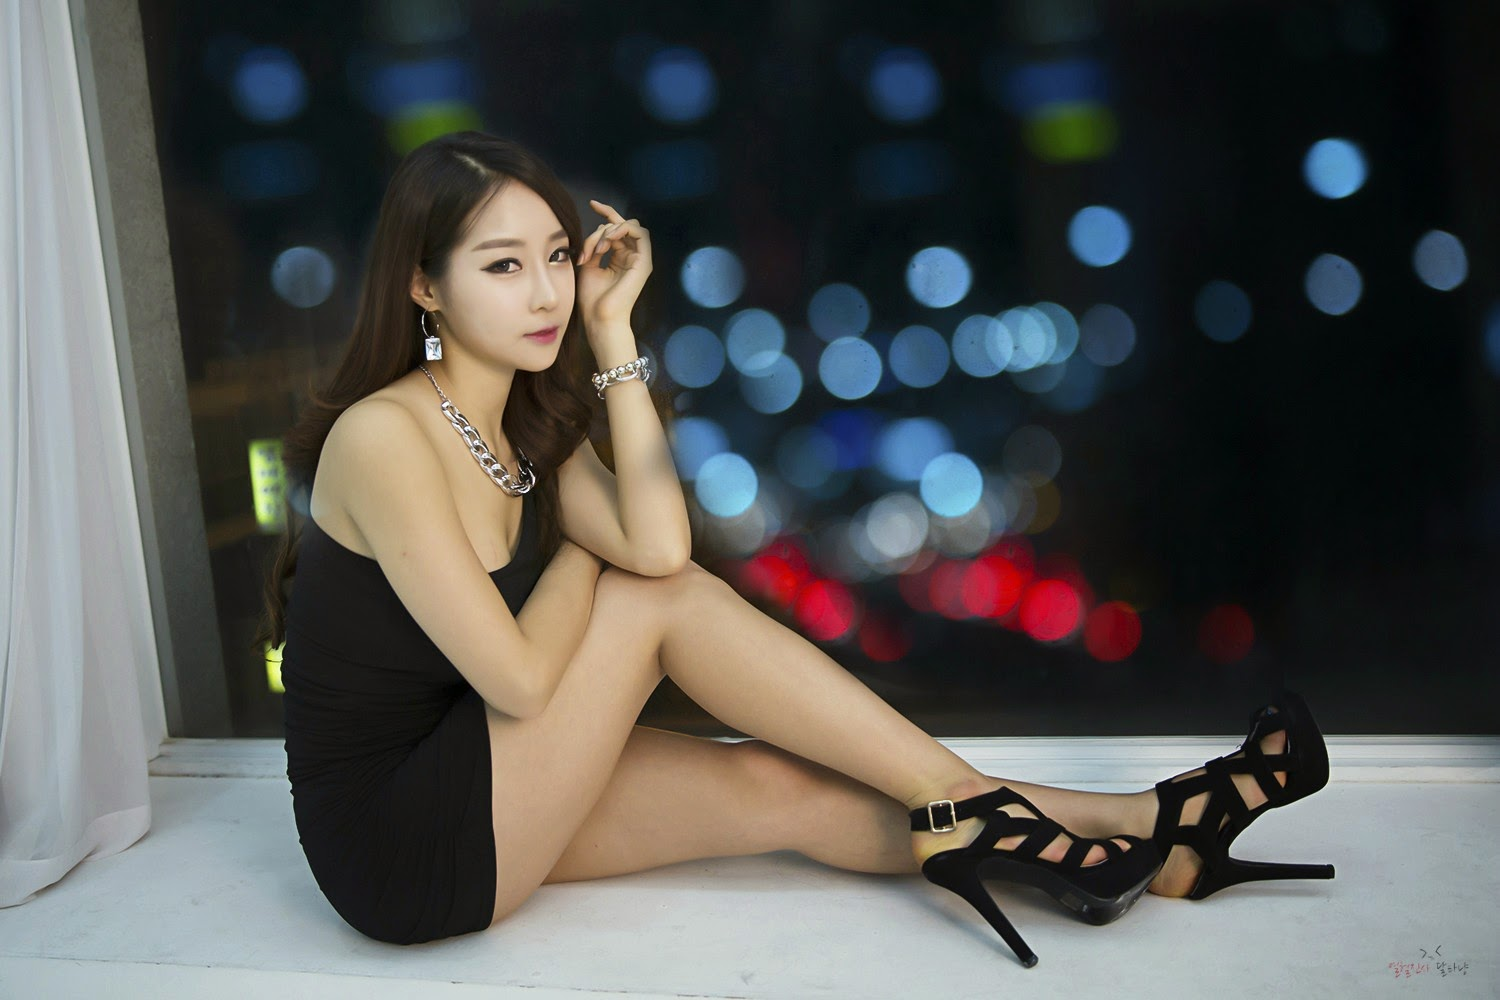 3 Lovely Eun Ji Ye In Studio Photo Shoot - very cute asian girl-girlcute4u.blogspot.com